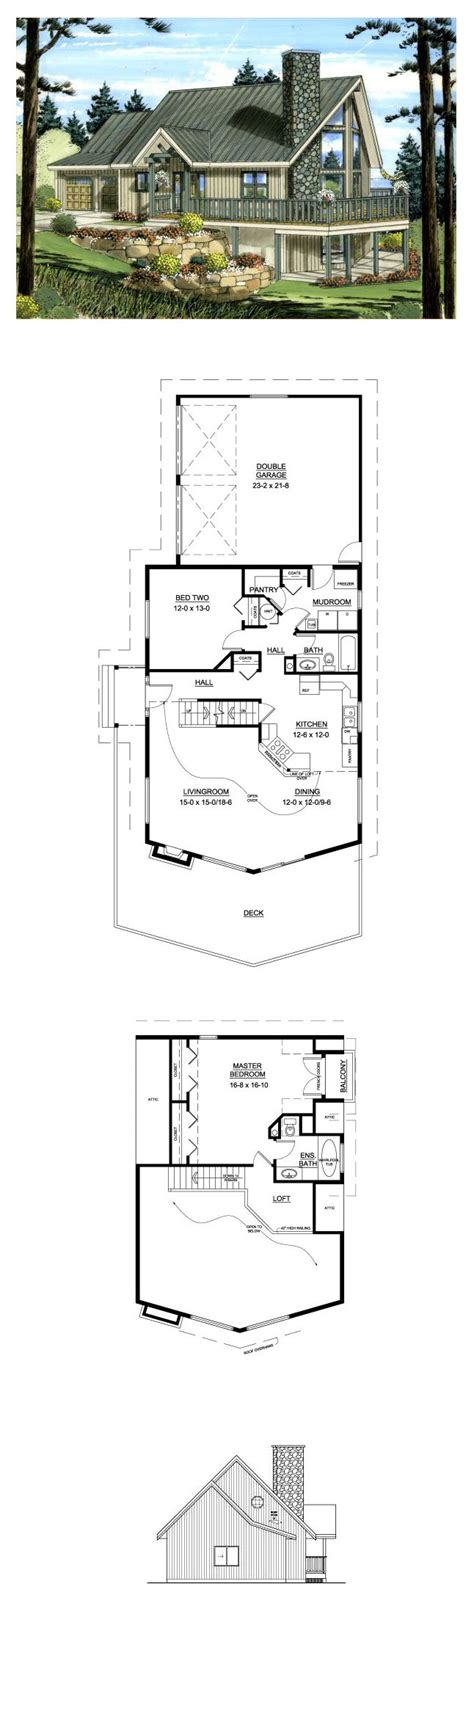 Lakefront Style COOL House Plan ID: chp 49916 Total